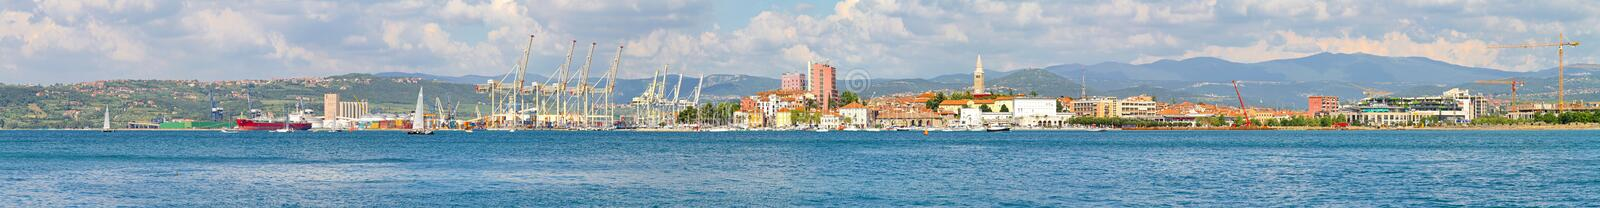 Koper panorama royalty free stock photos